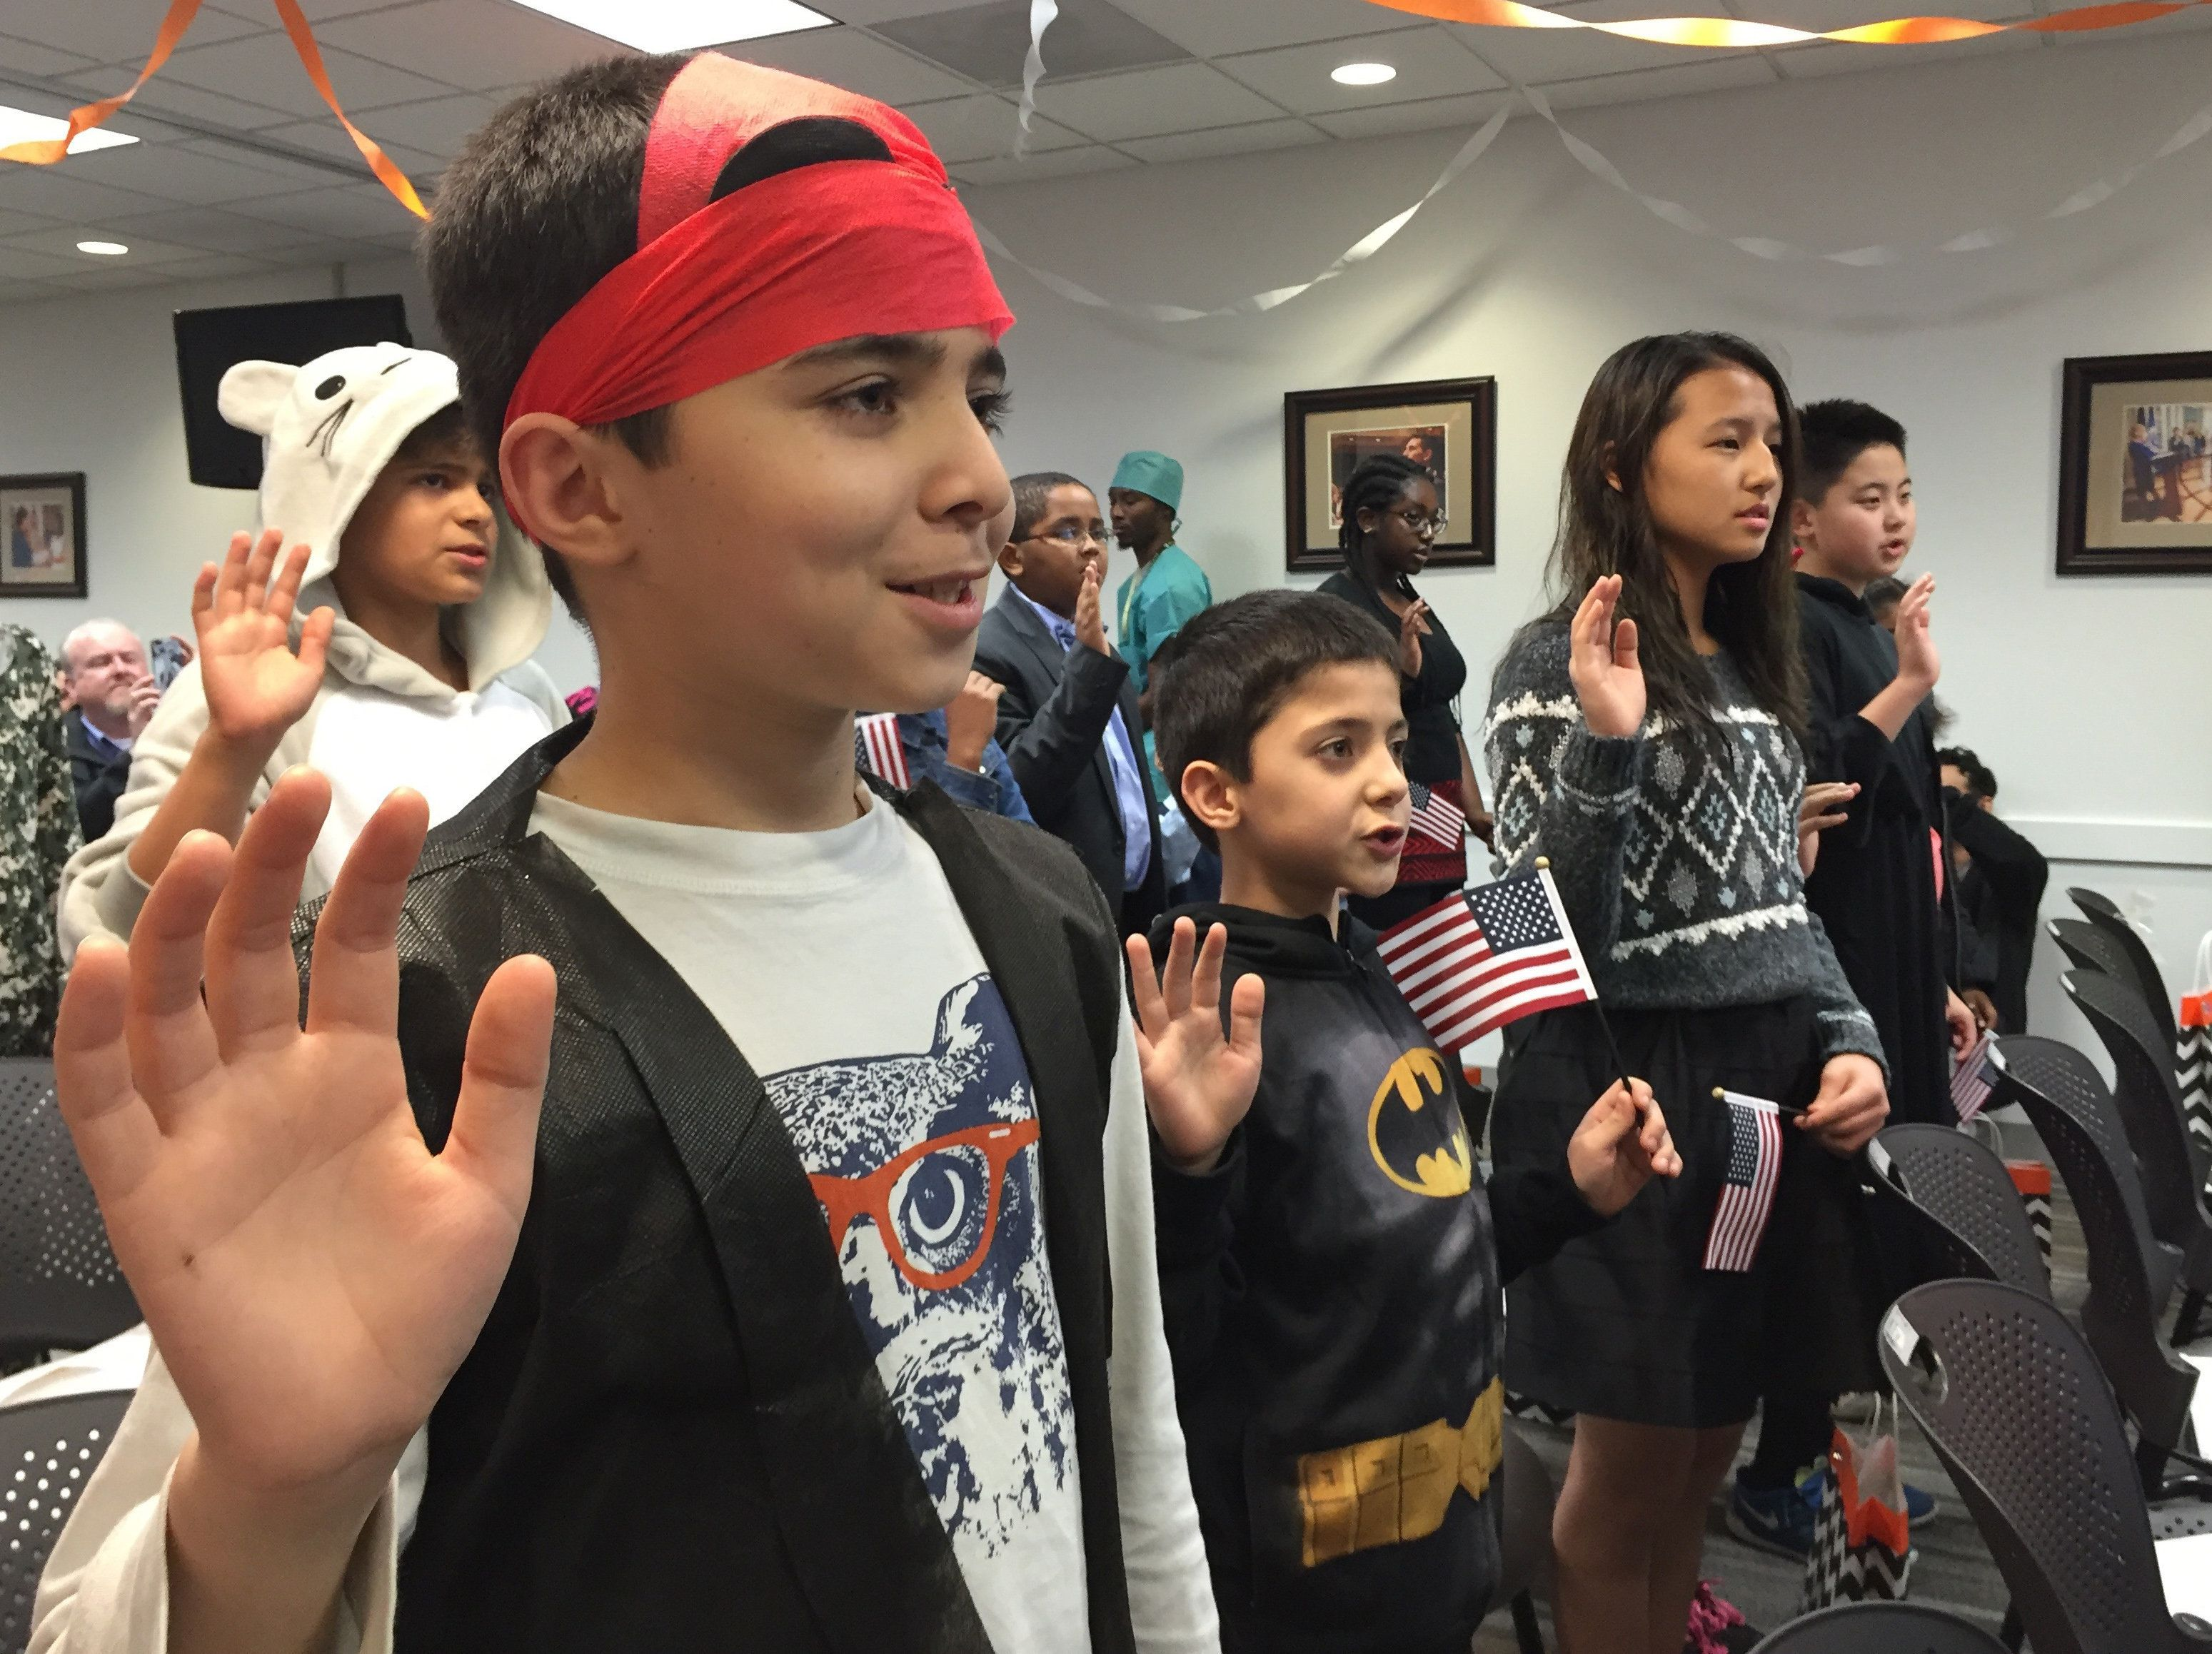 Ahad Kahattak, 11, and Ahmad Kahattak, 8, of Pakistan take the oath of allegiance during a U.S. naturalization ceremony.